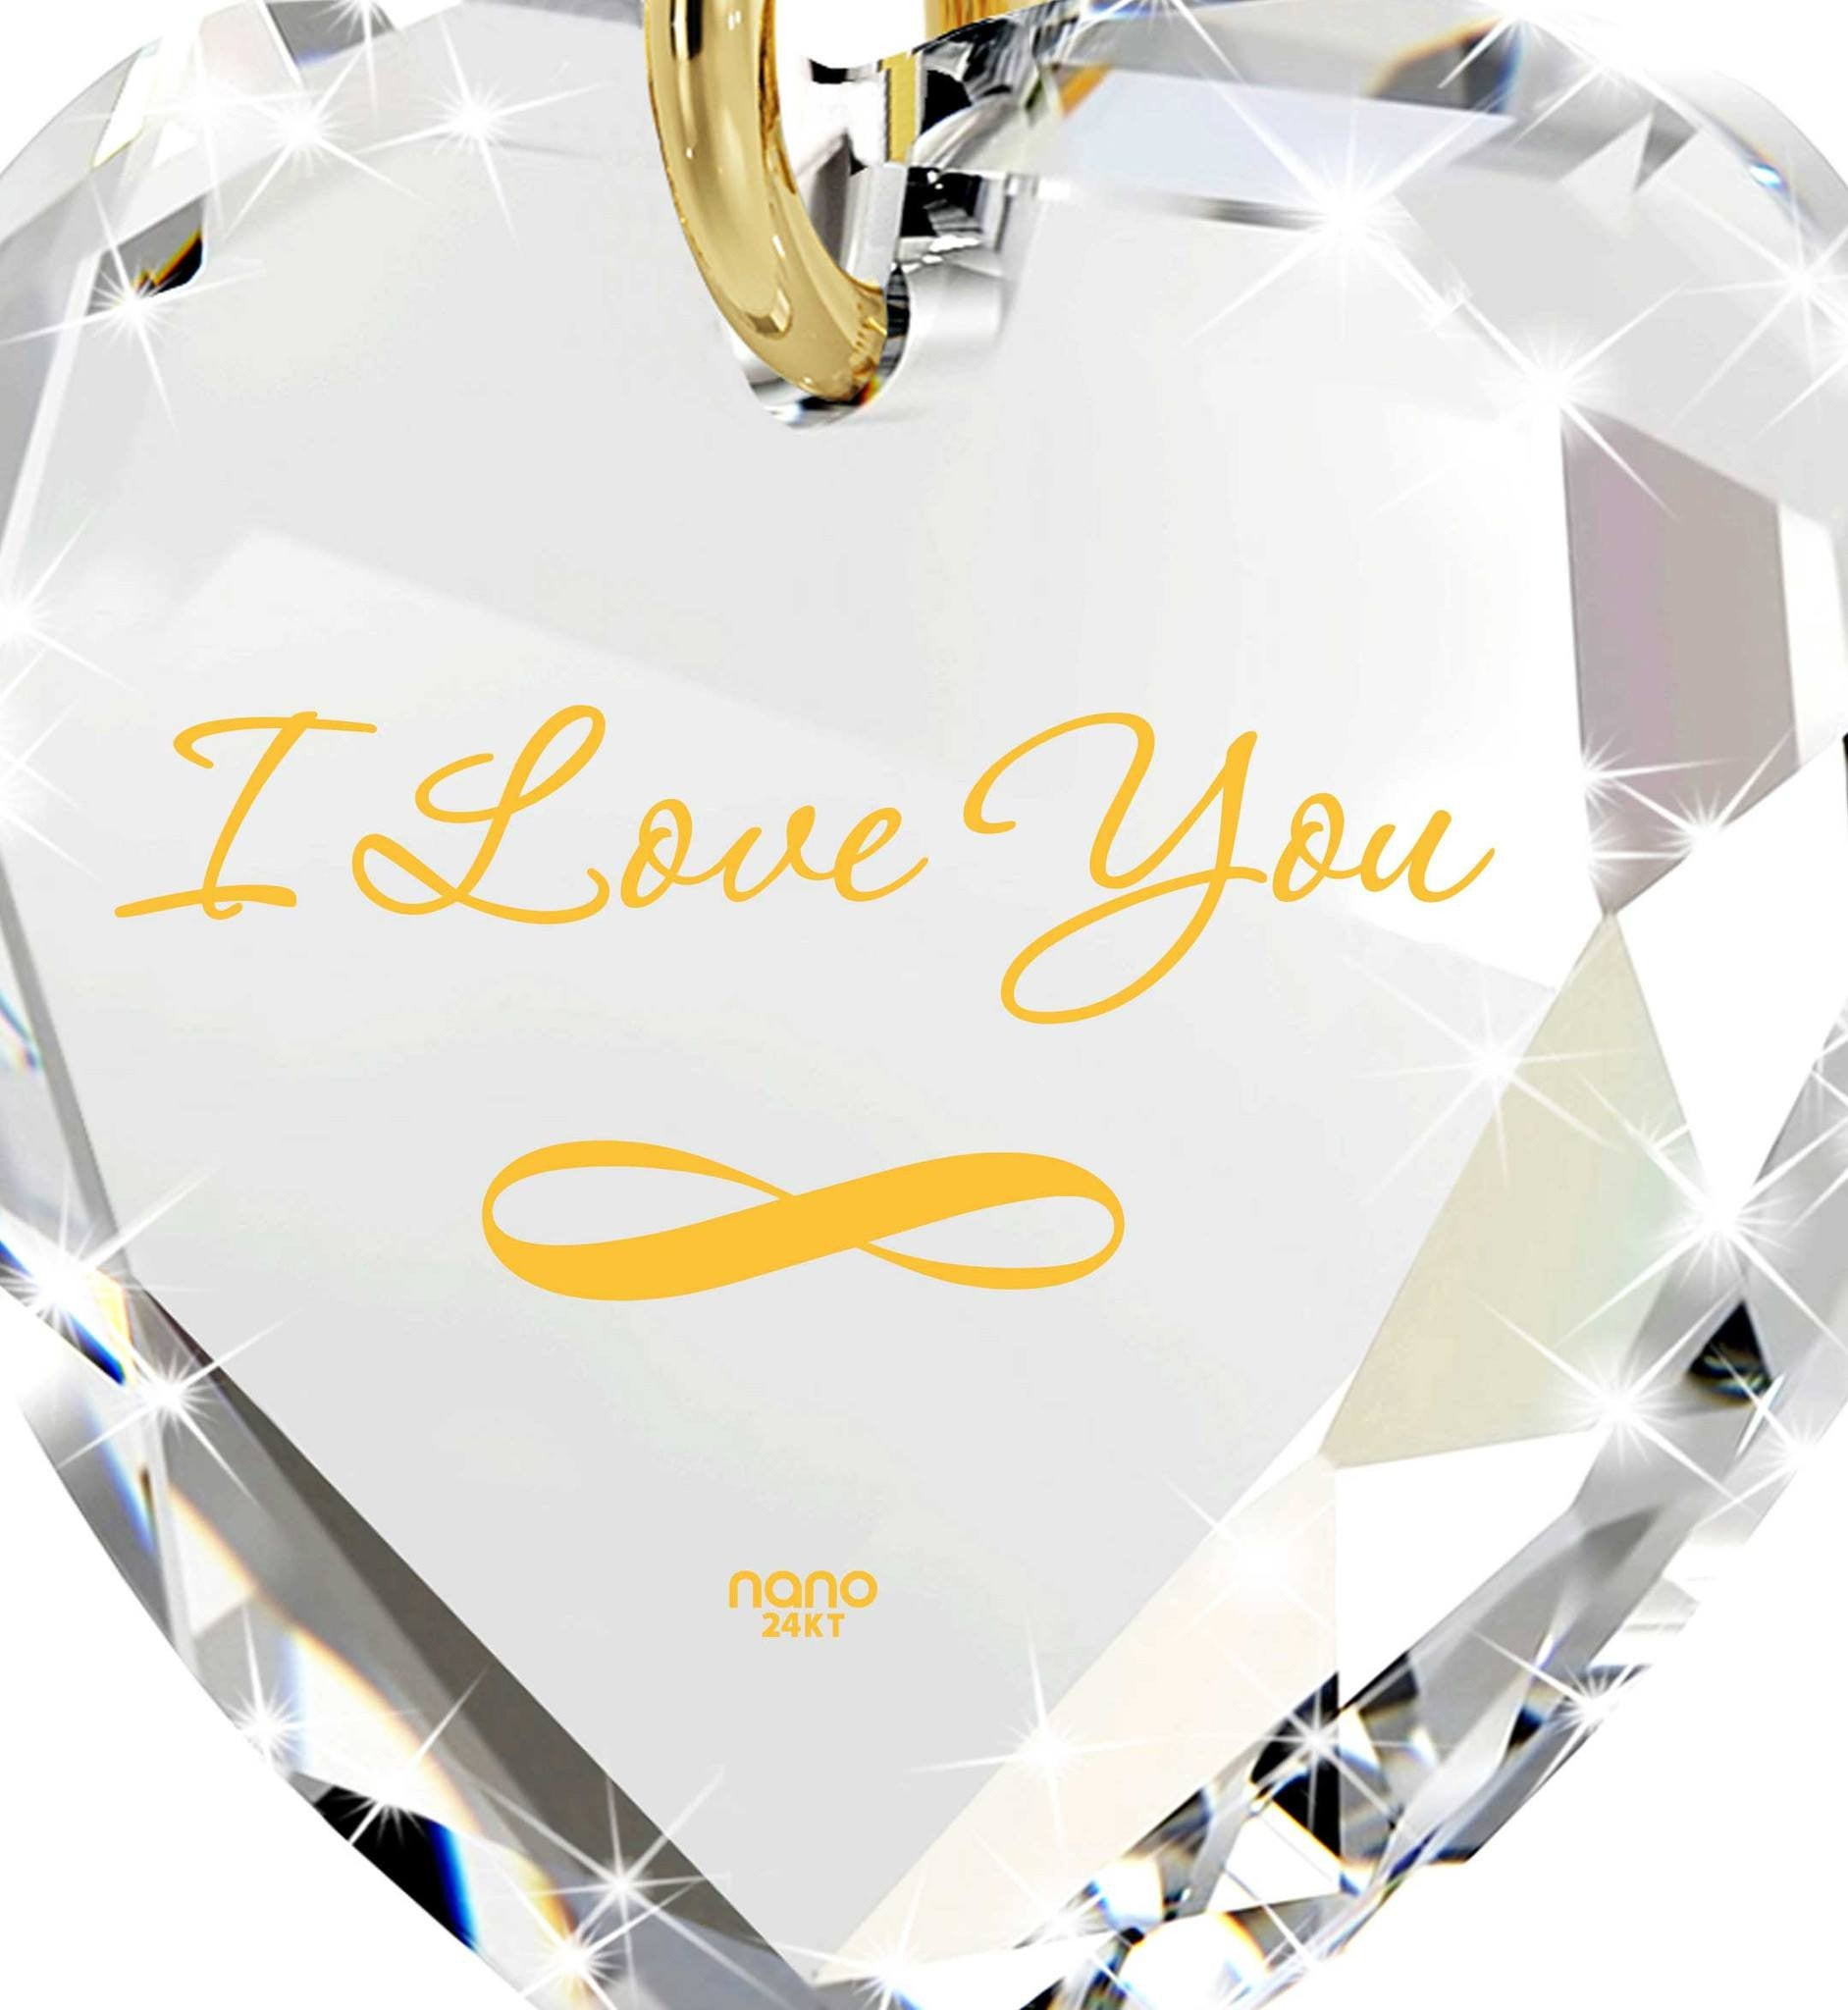 """I Love You Infinity"" in 24k Gold, Girlfriend Birthday Ideas,Womens Presents, Nano Jewelry"